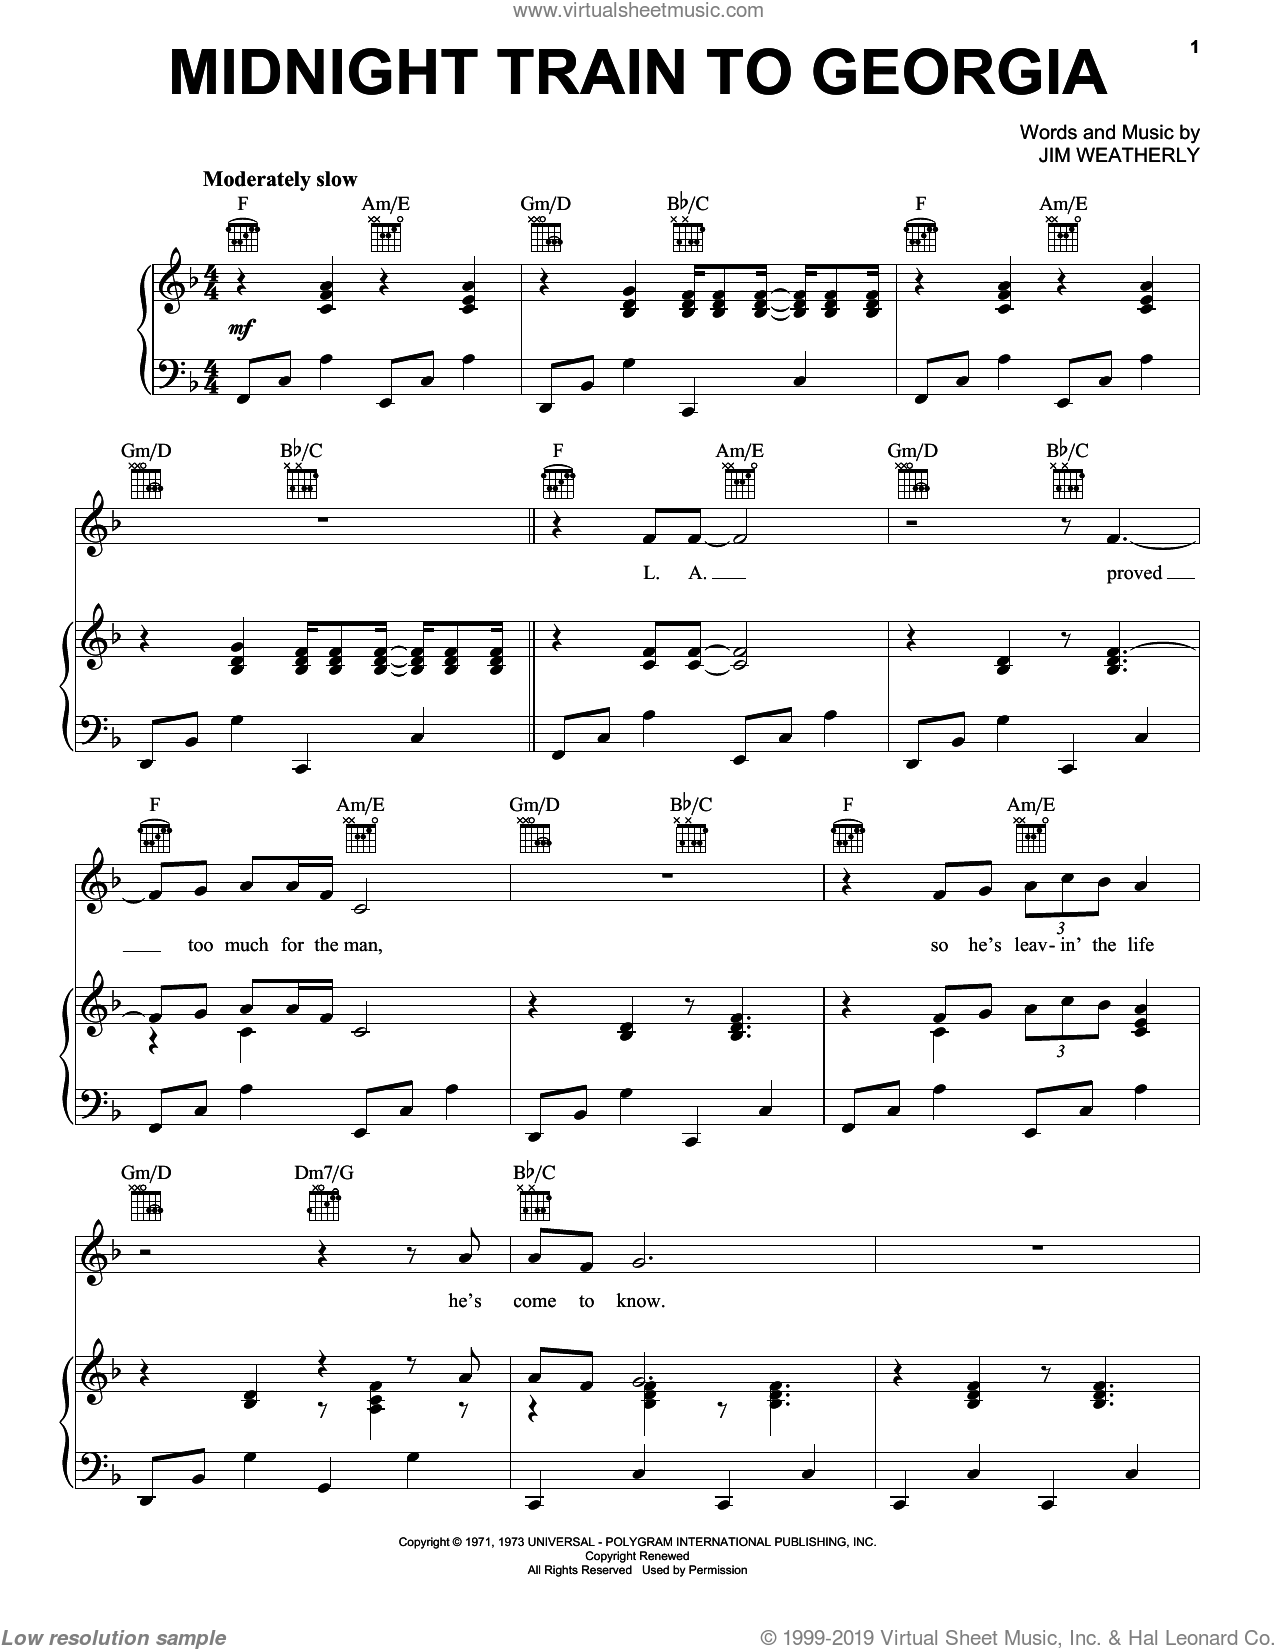 Midnight Train To Georgia sheet music for voice, piano or guitar by Gladys Knight & The Pips and Jim Weatherly, intermediate skill level